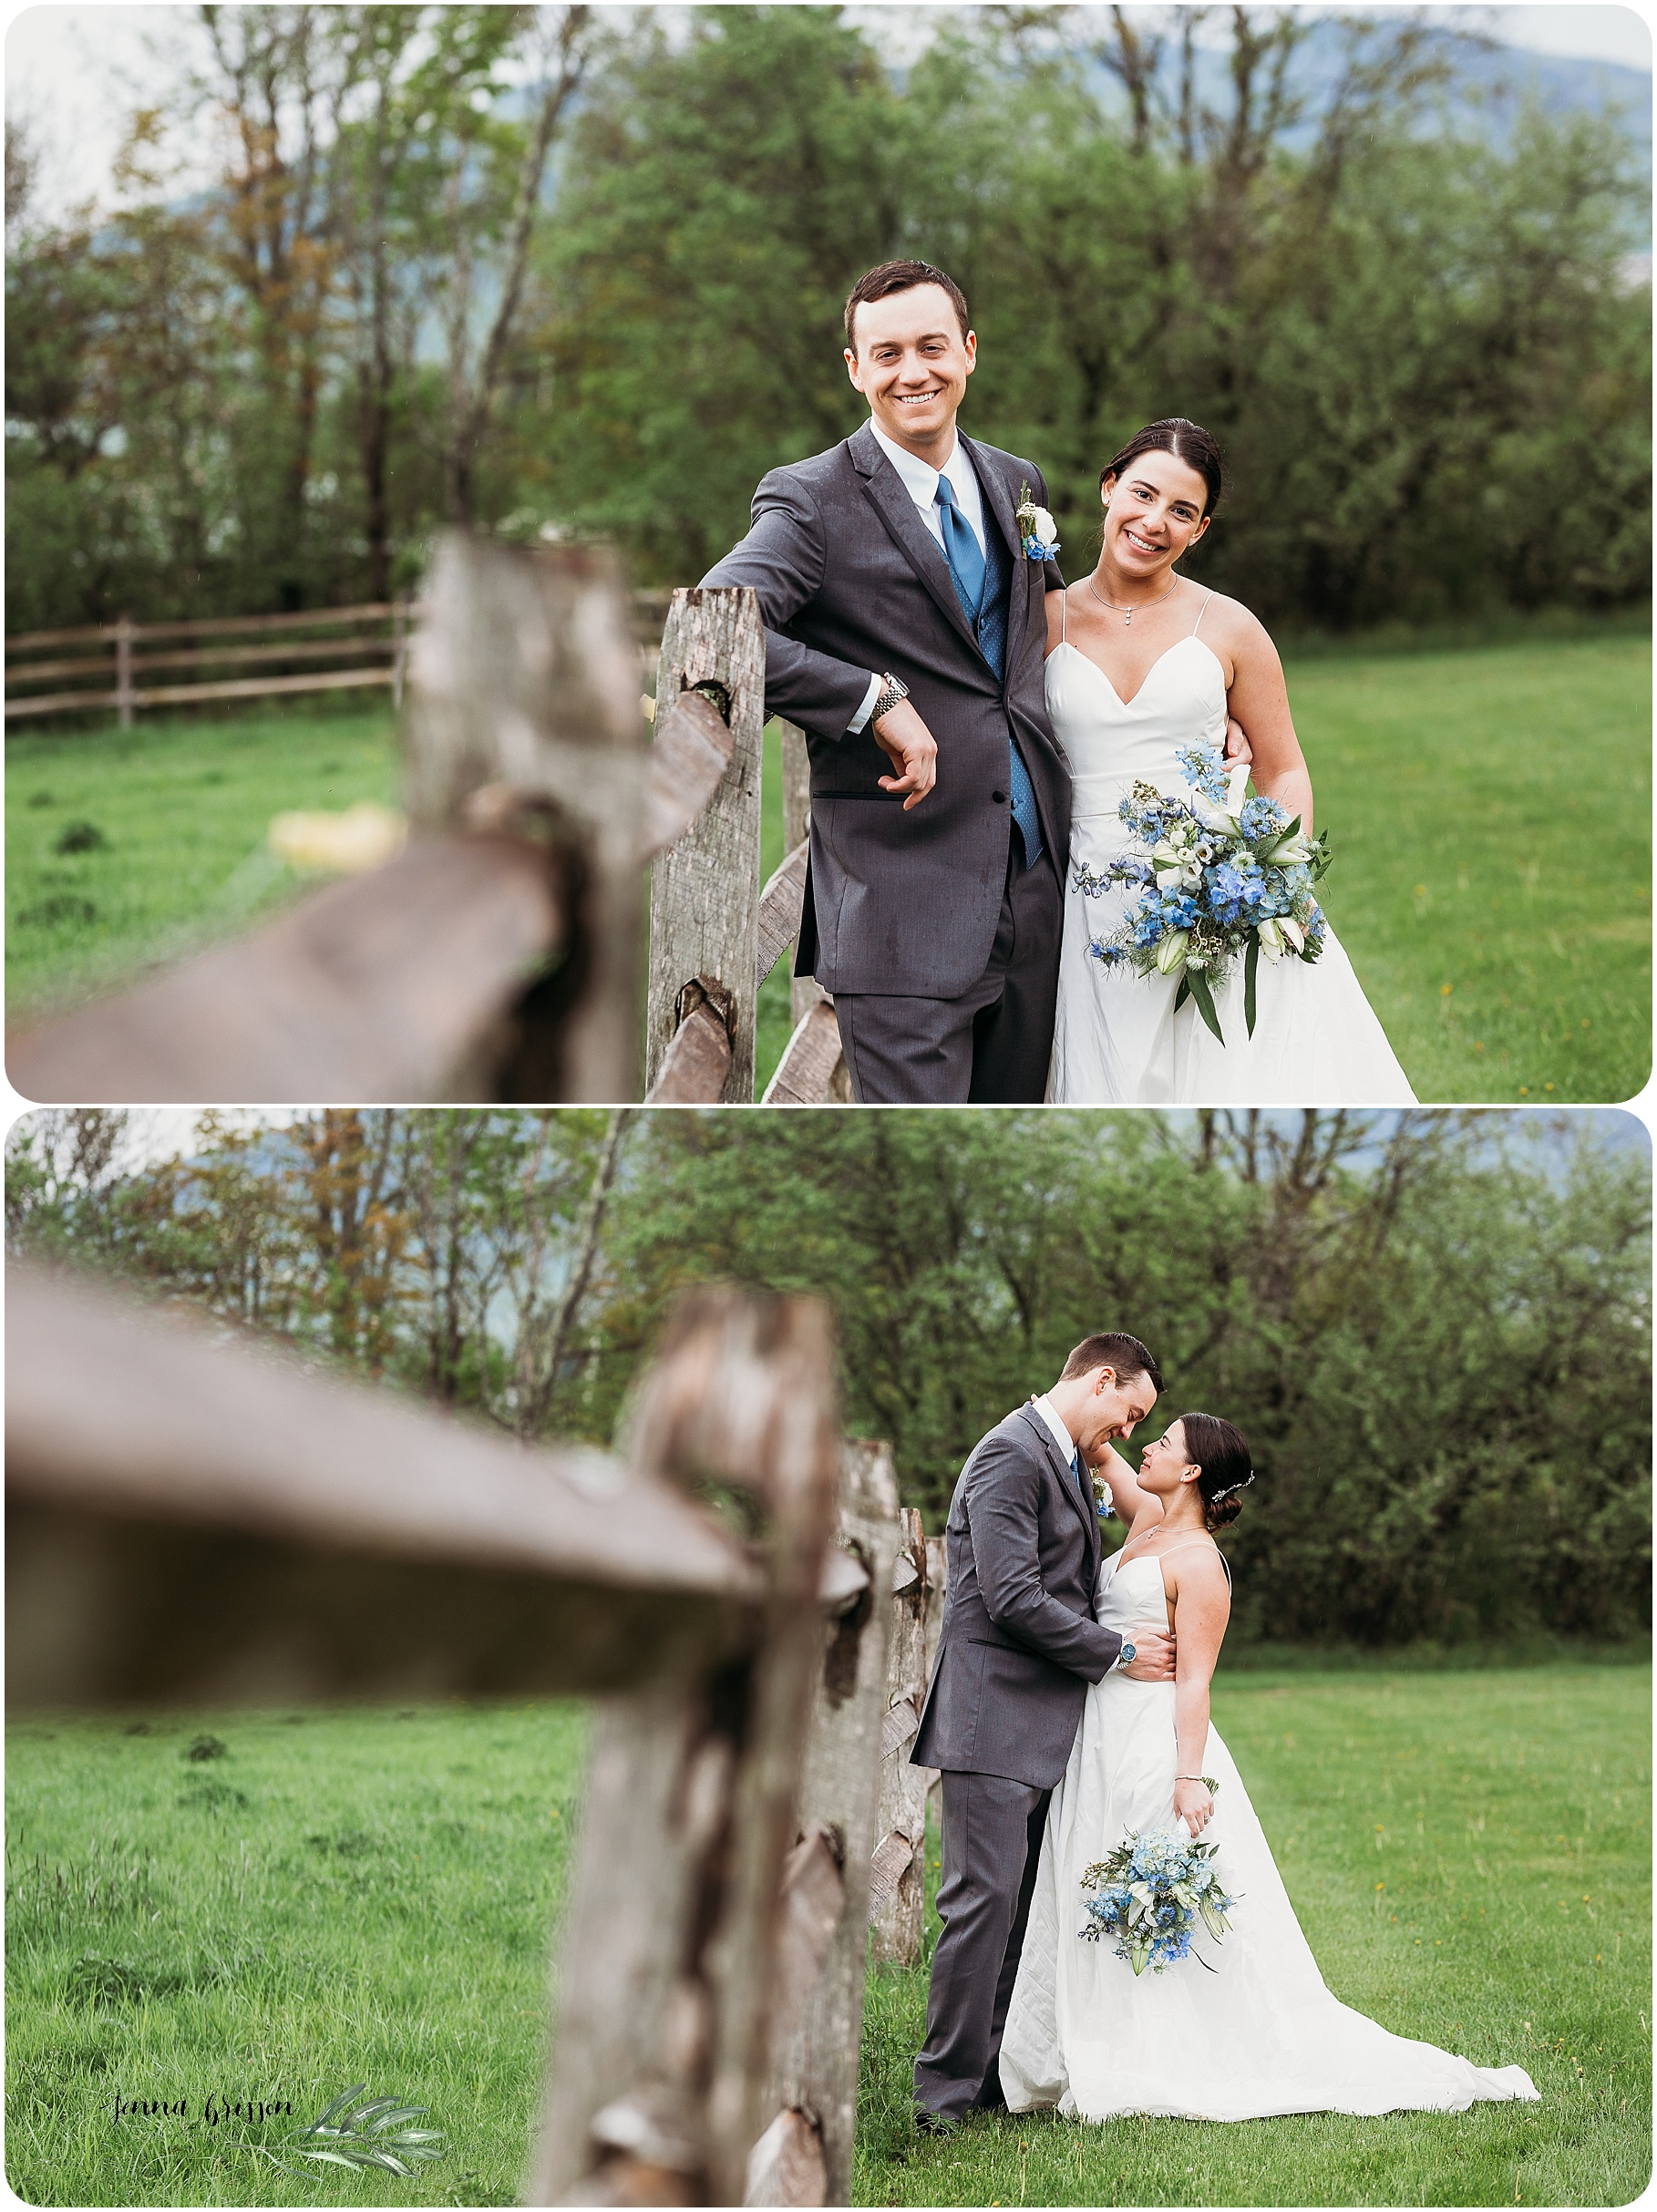 Mountain Top Inn Wedding Vermont 3 - Jenna Brisson